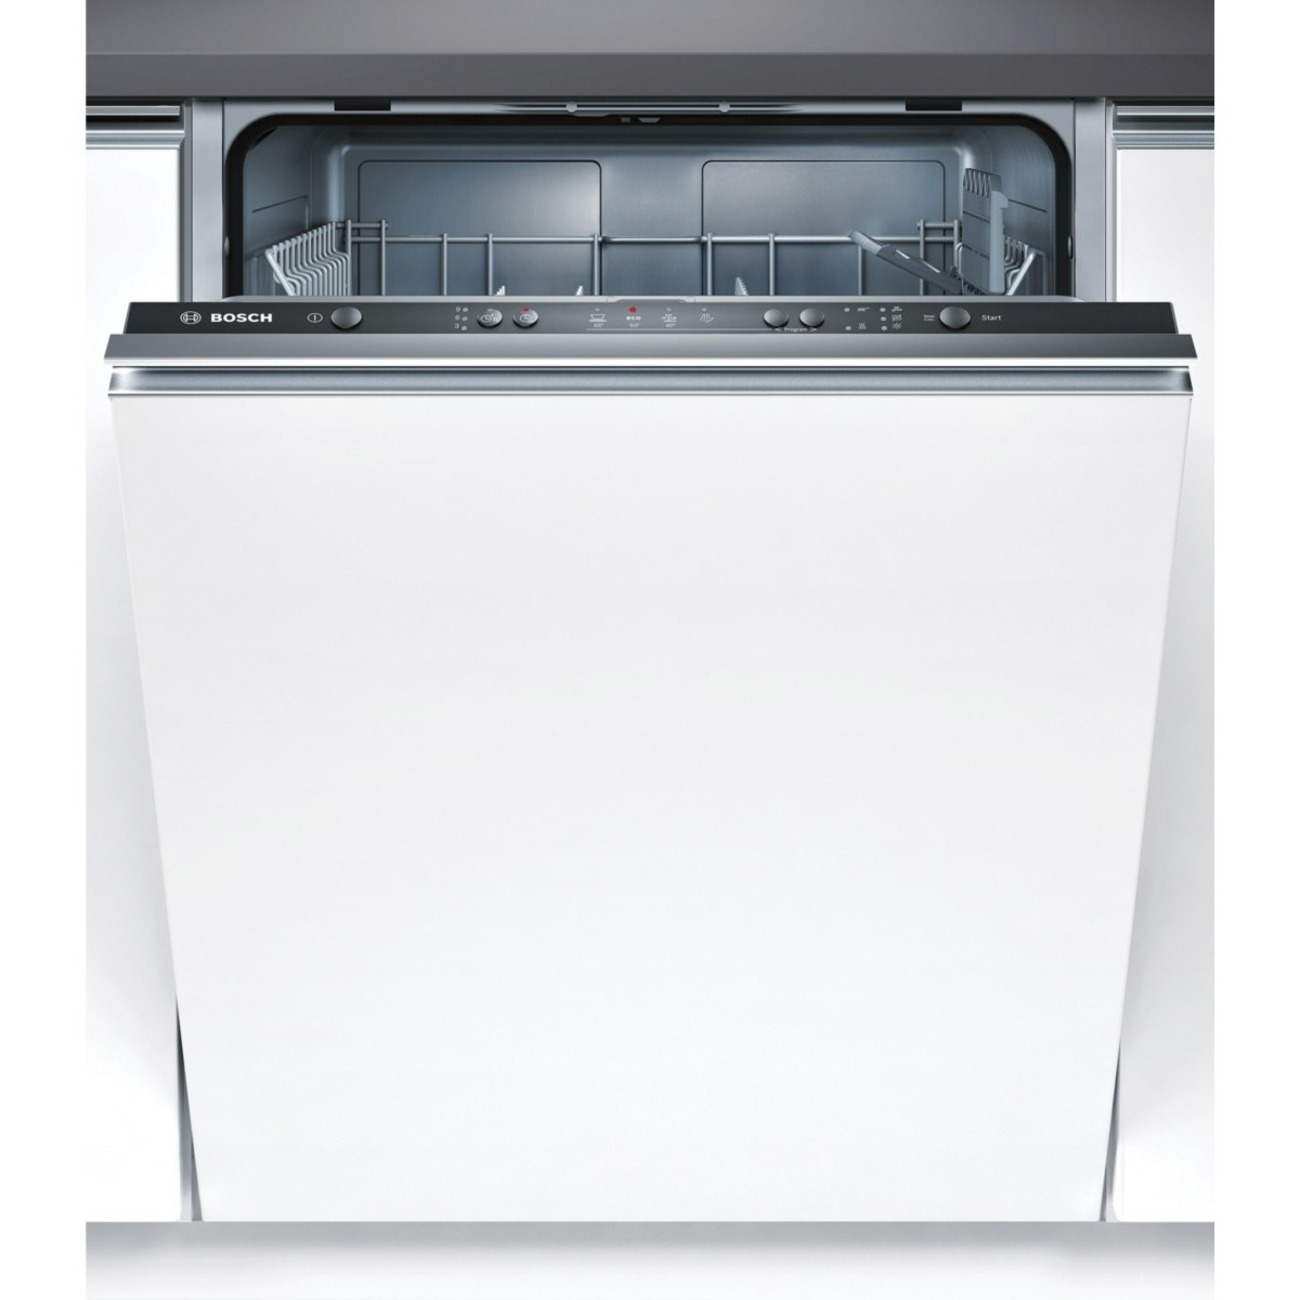 Dishwasher Brands Full Size Integrated Dishwasher From Bosch